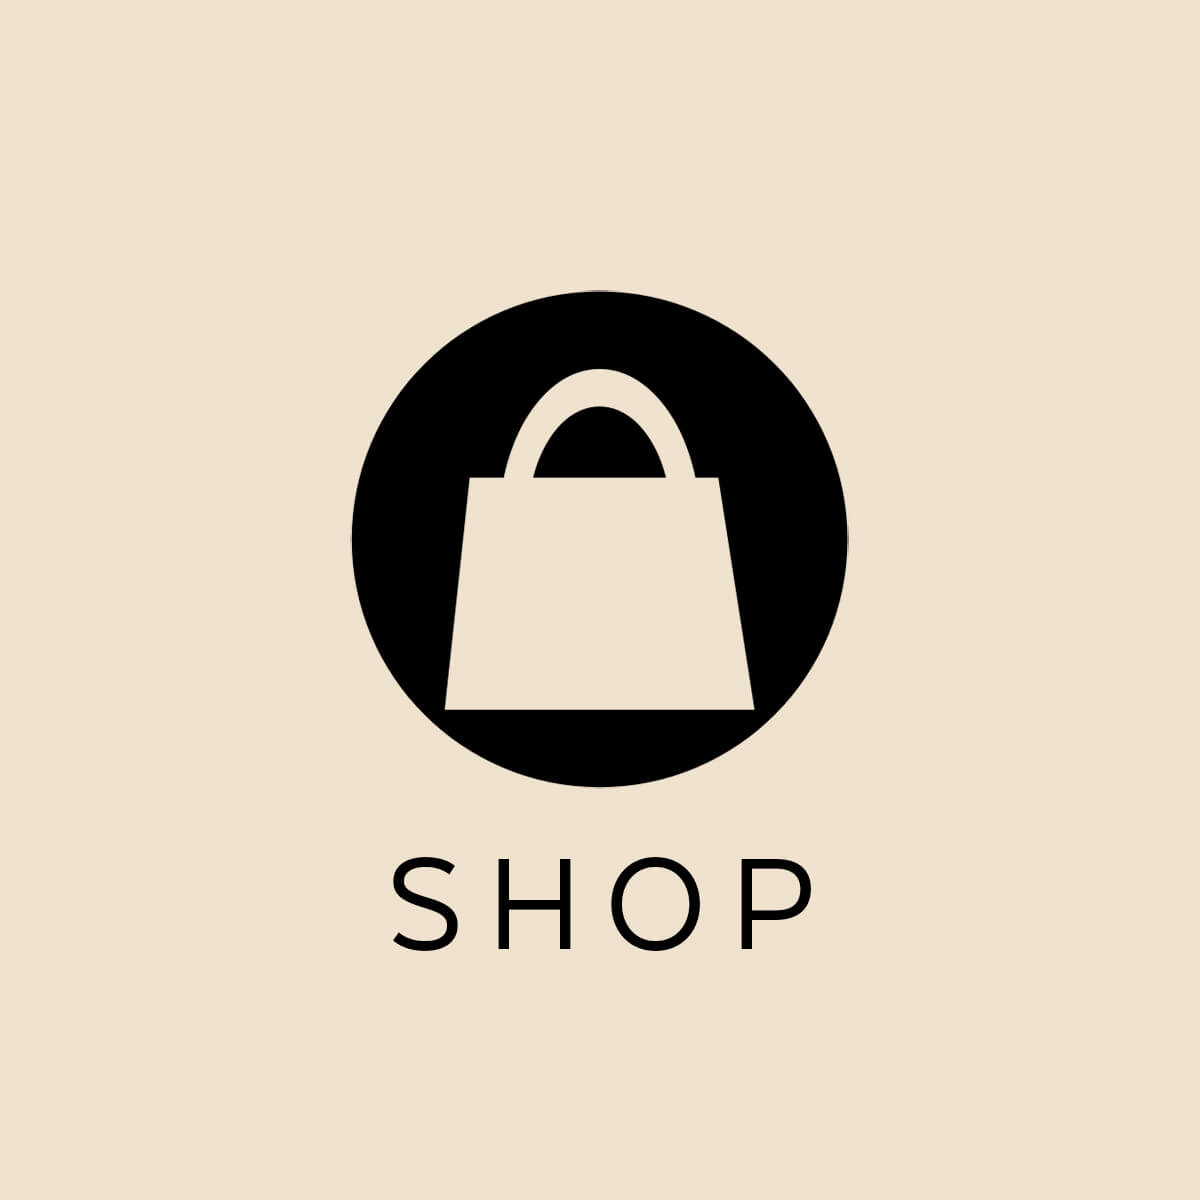 5cfd12303d3e6 The Lifestyled Company Shop Button.jpg